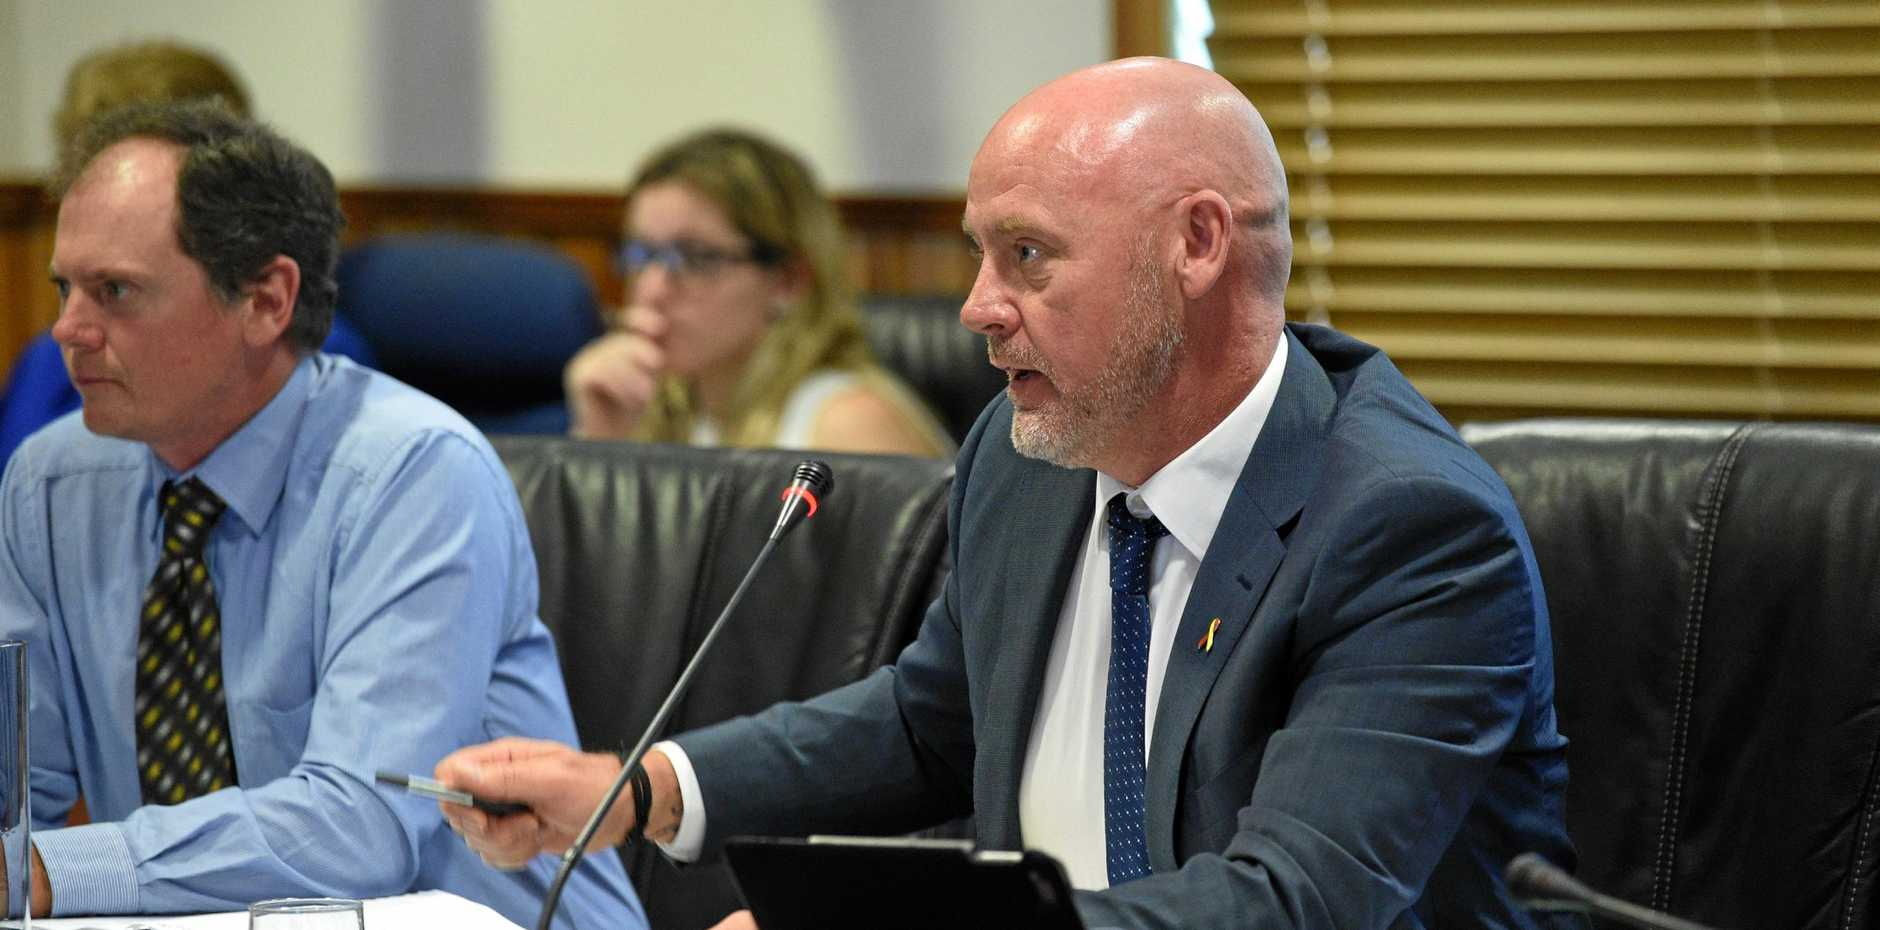 Acting Mayor Darren Everard said the Smarter Communities plan was designed to improve efficiency and create new economic and employment opportunities.